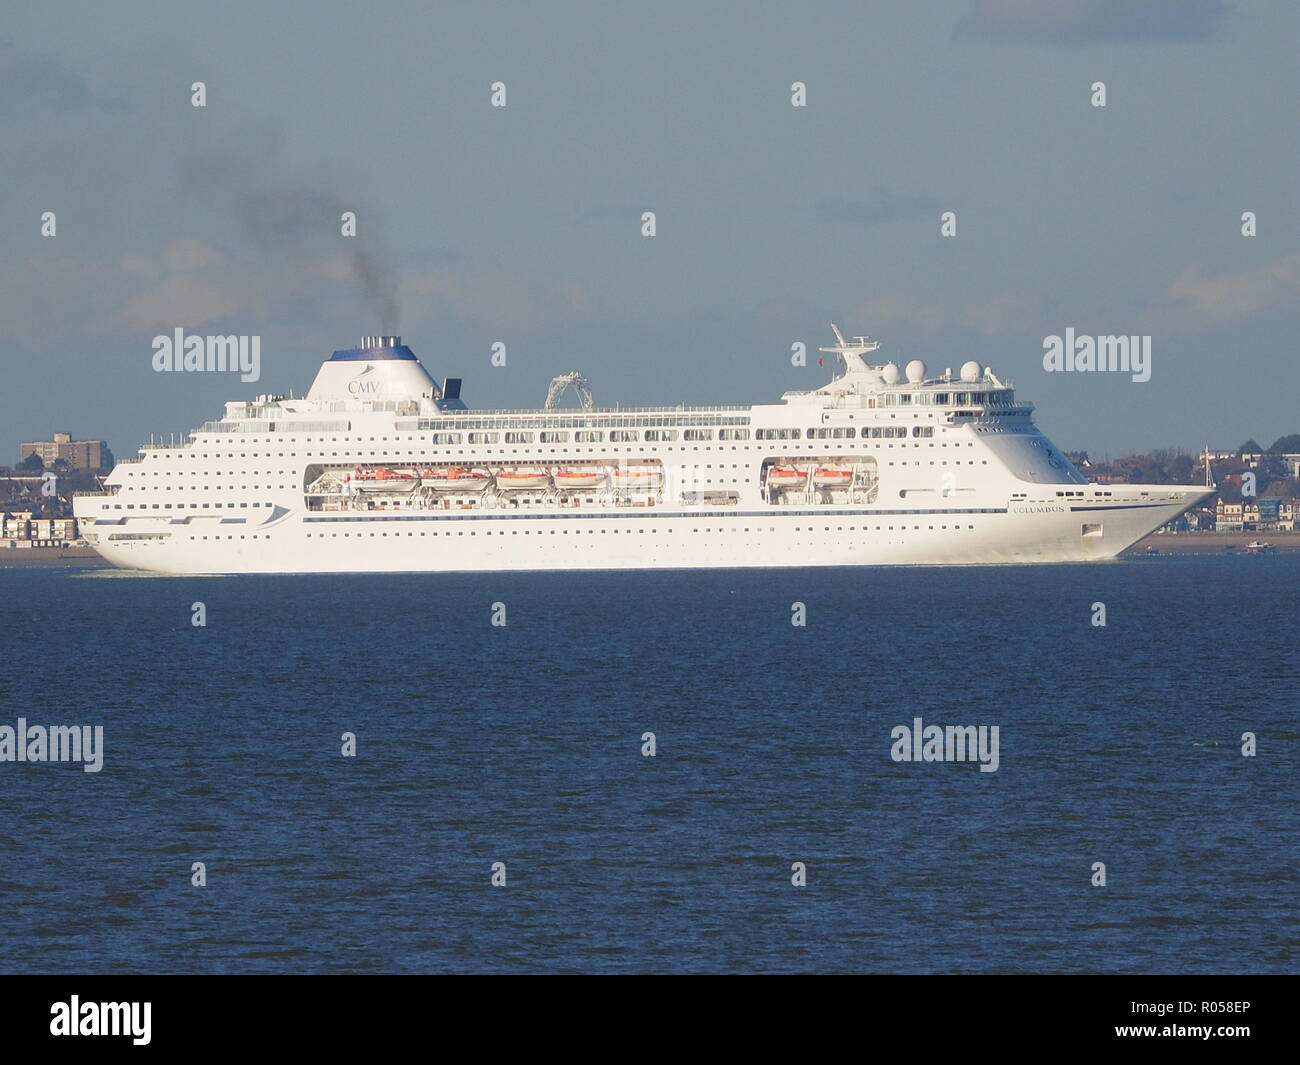 Sheerness, Kent, UK. 2nd Nov, 2018. Cruise ship 'Columbus' passing Sheerness on a sunny afternoon. Columbus is 246m long by 32m wide and was purpose-built in 1988 for deep sea ocean cruising.  Credit: James Bell/Alamy Live News - Stock Image